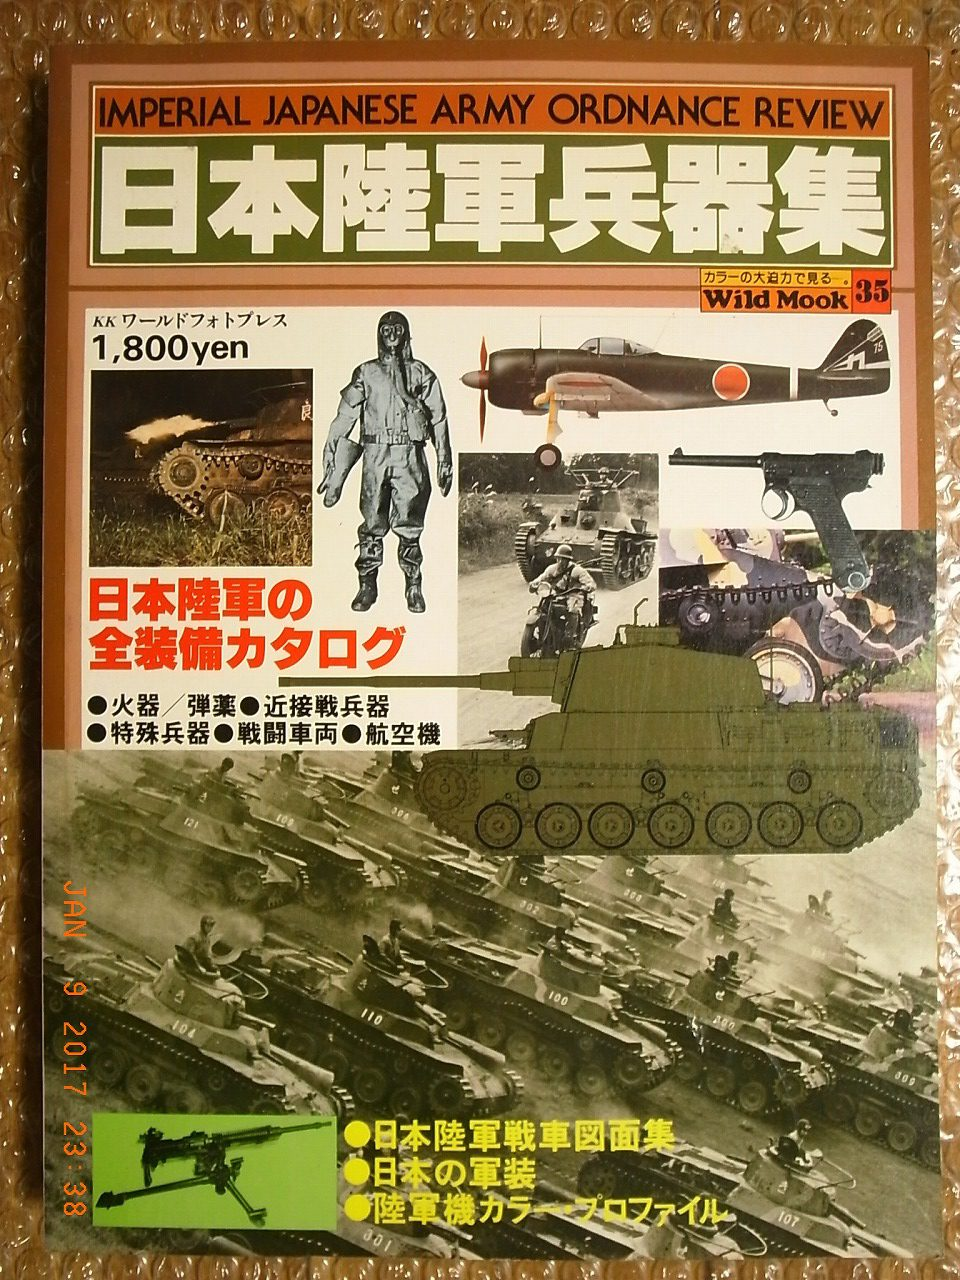 IJA IMPERIAL JAPANESE ARMY WEAPONS OF W W II  PICTORIAL BOOK, WORLD PHOTO  PRESS